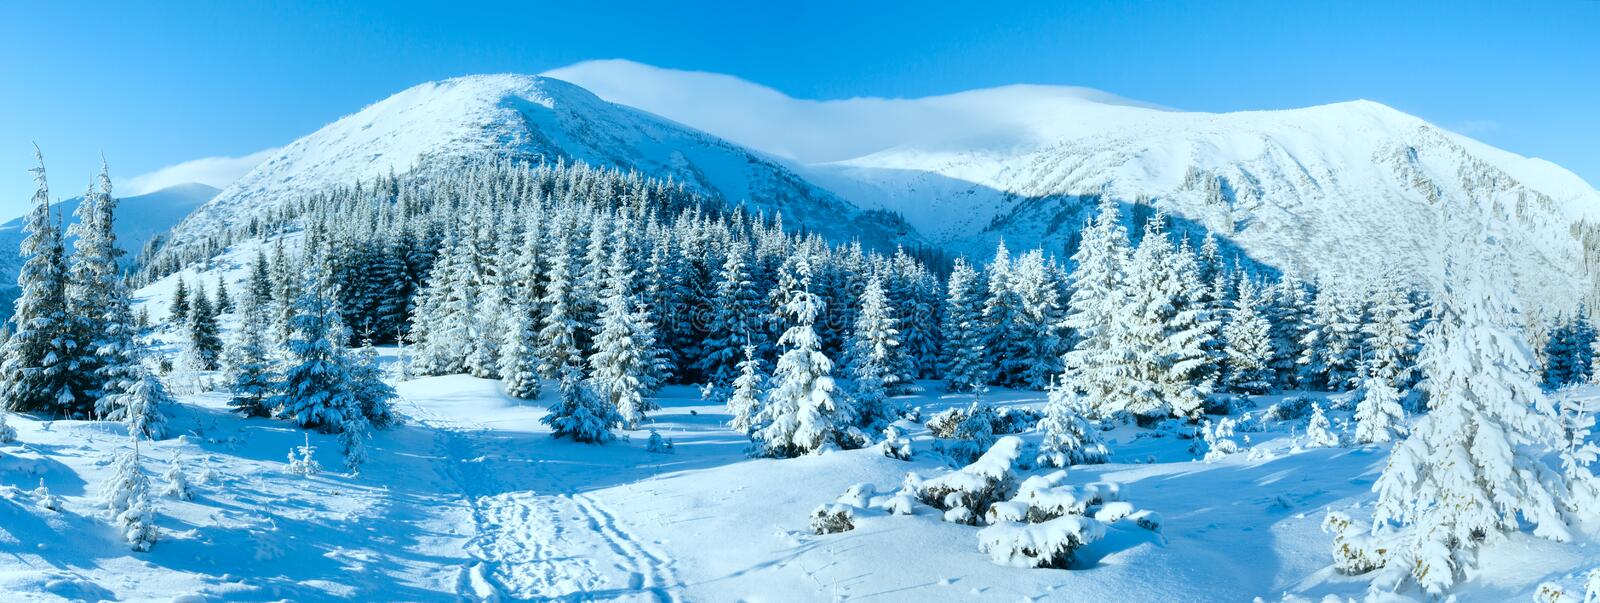 Morning winter mountain landscape. With fir trees on slope stock photography